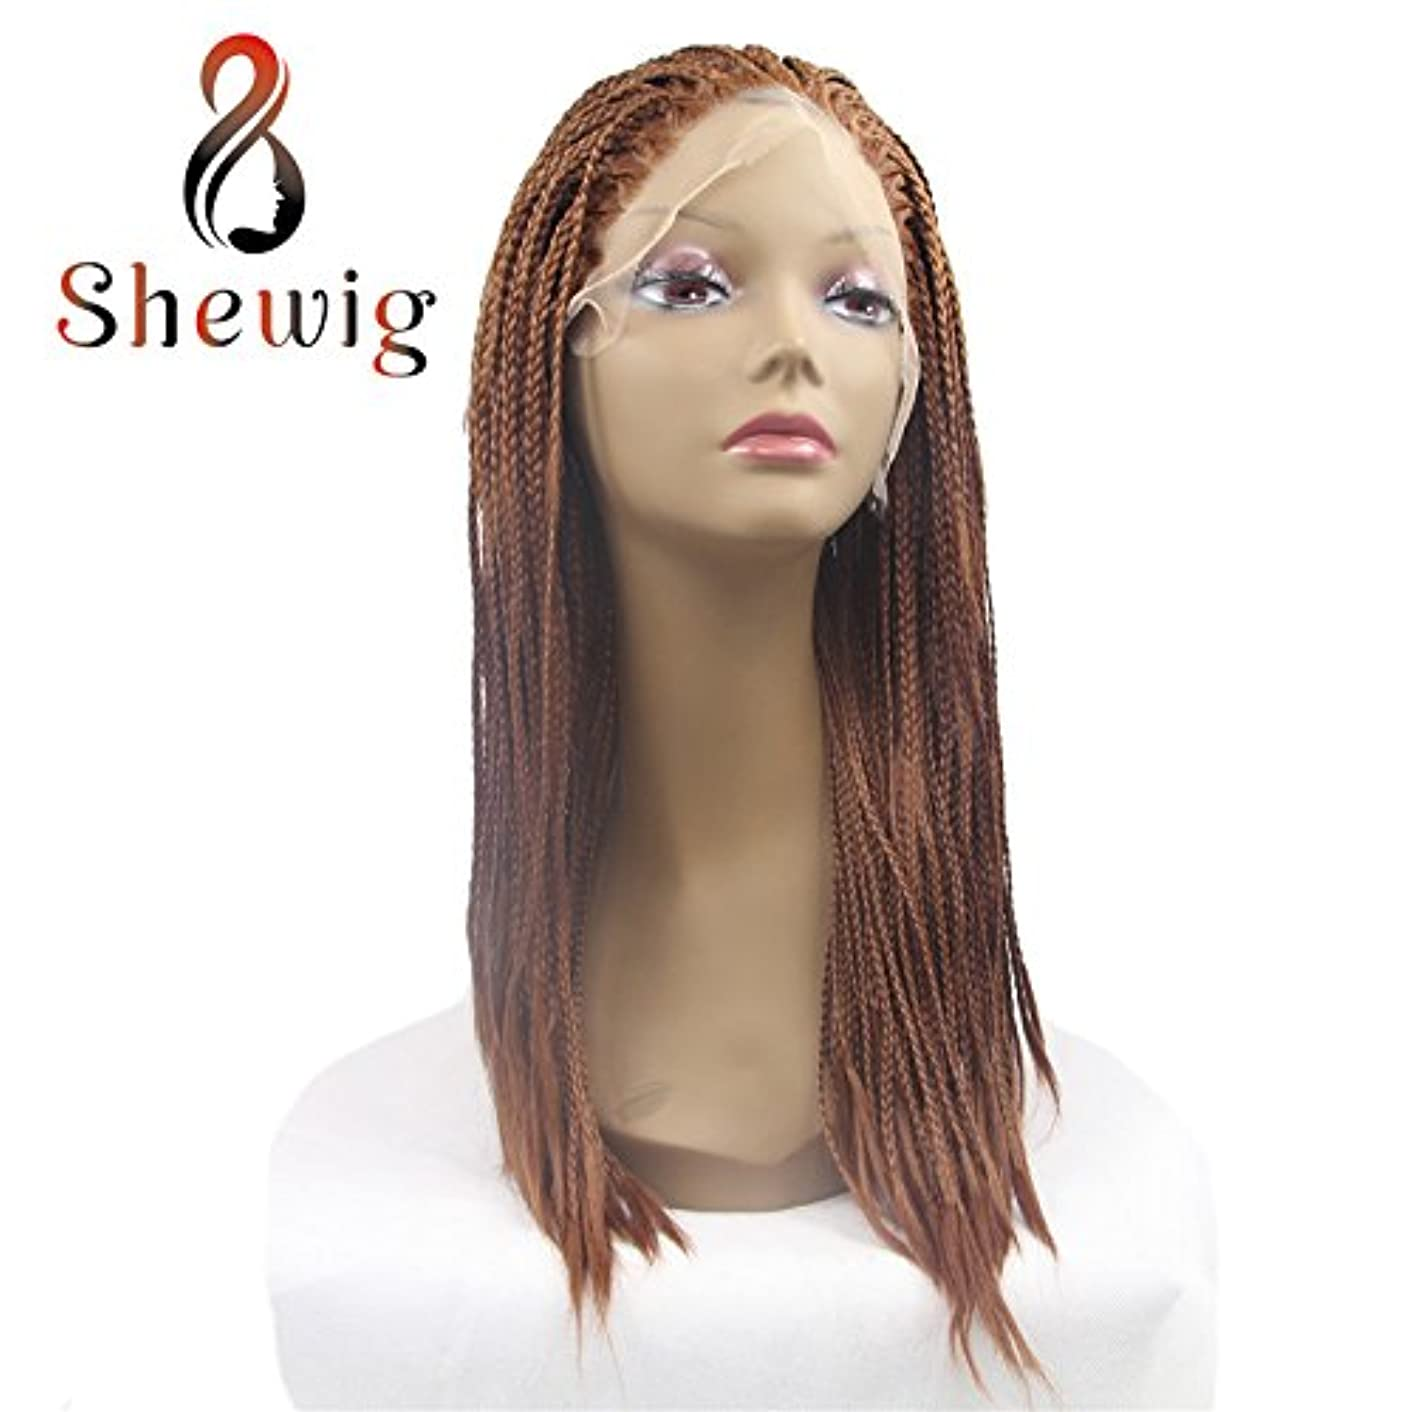 SheWig Braids Wig Chestnut Brown Box Braids Wig Synthetic Lace Front Wigs For Women